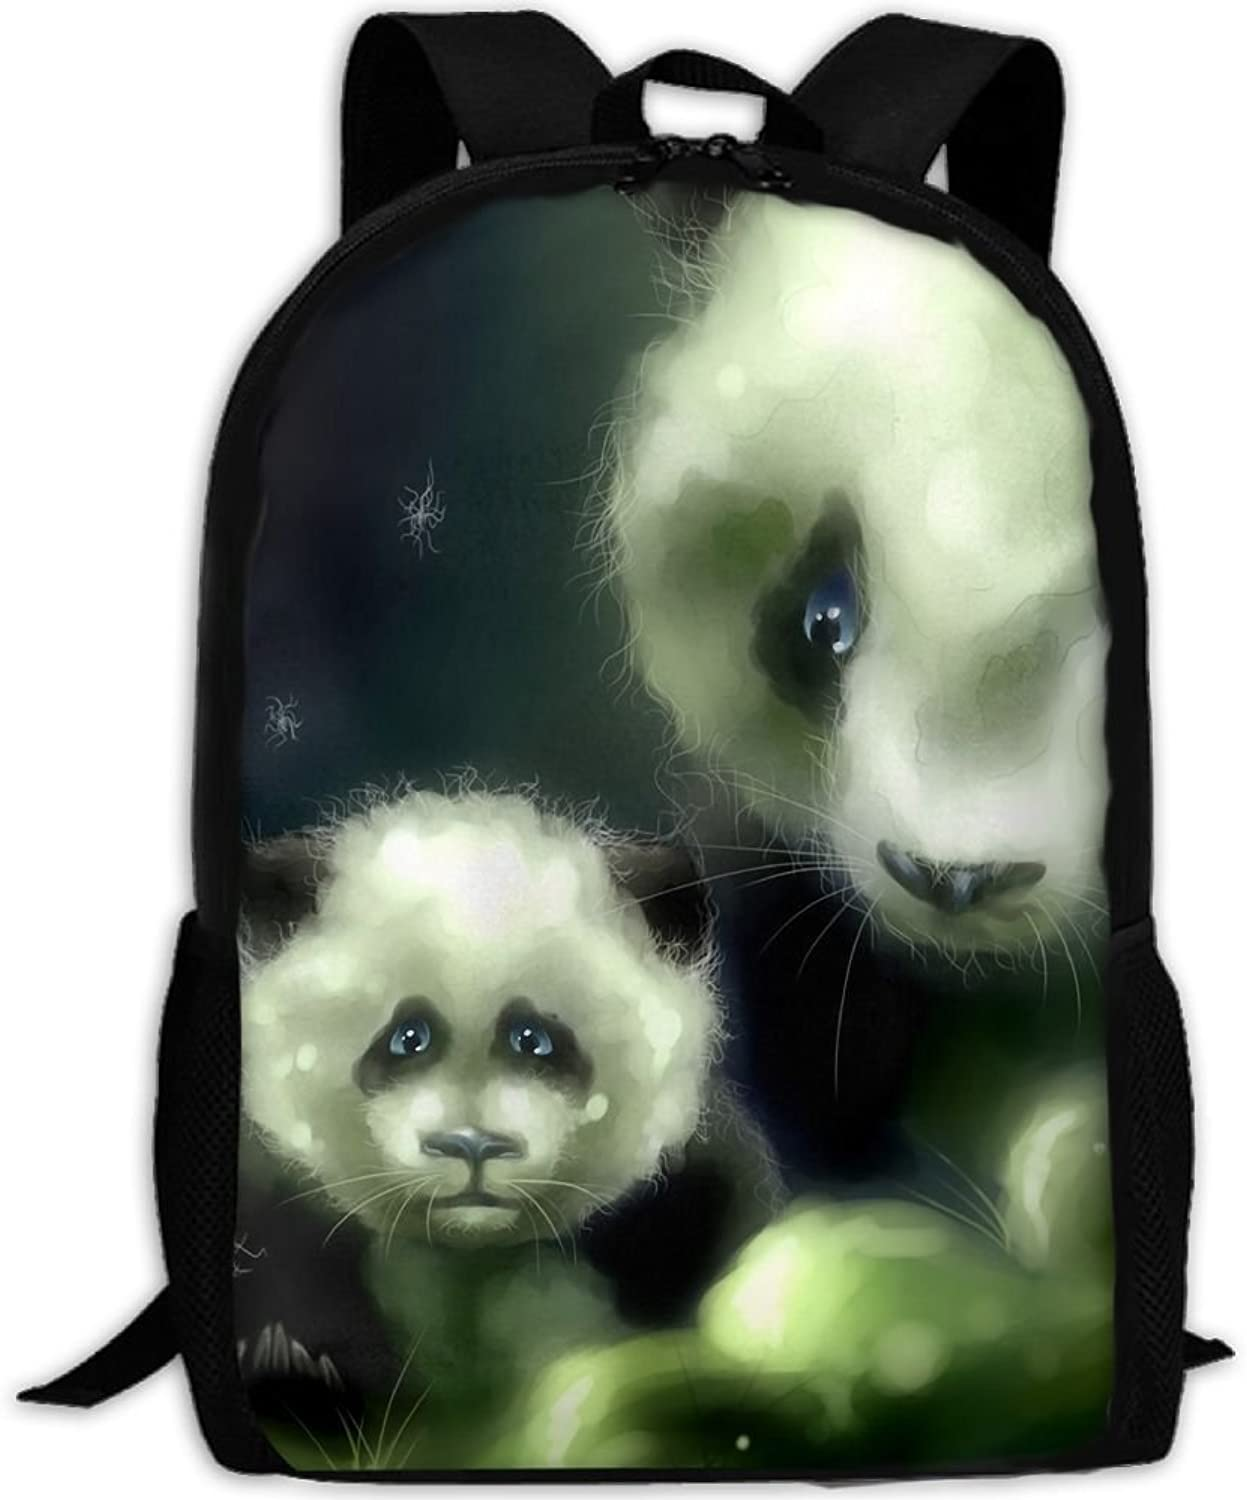 Adult Backpack Panda Bears College Daypack Oxford Bag Unisex Business Travel Sports Bag with Adjustable Strap